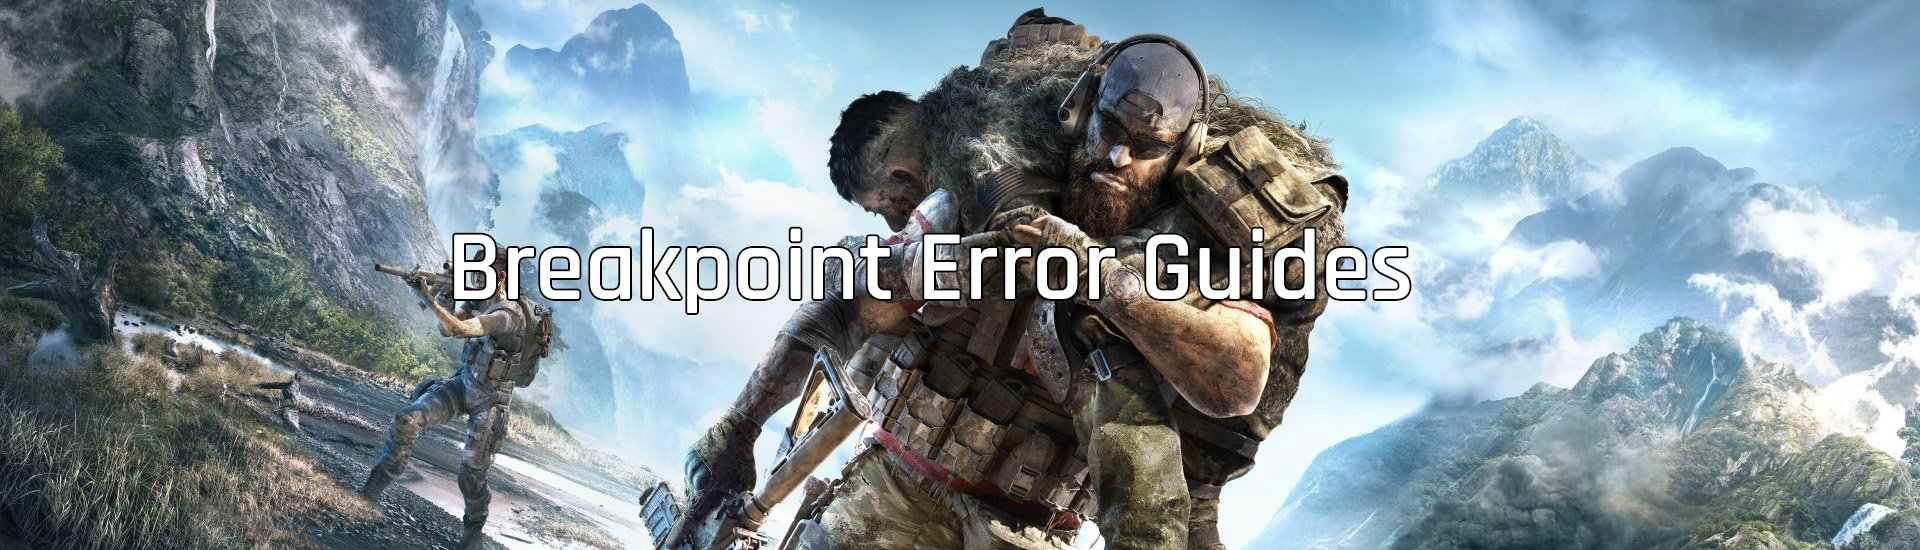 Breakpoint error guides